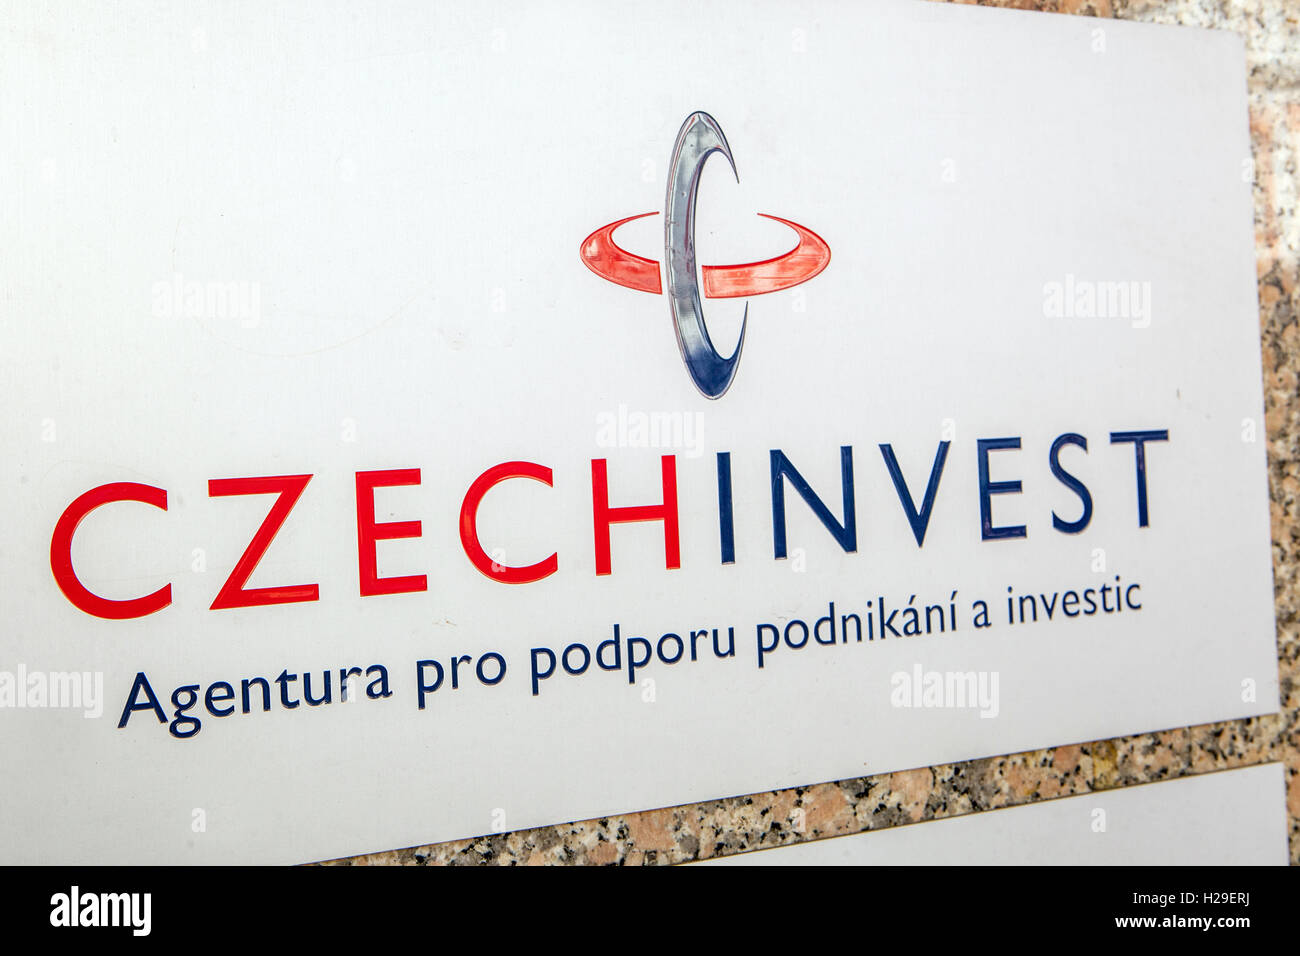 CzechInvest company logo - Stock Image